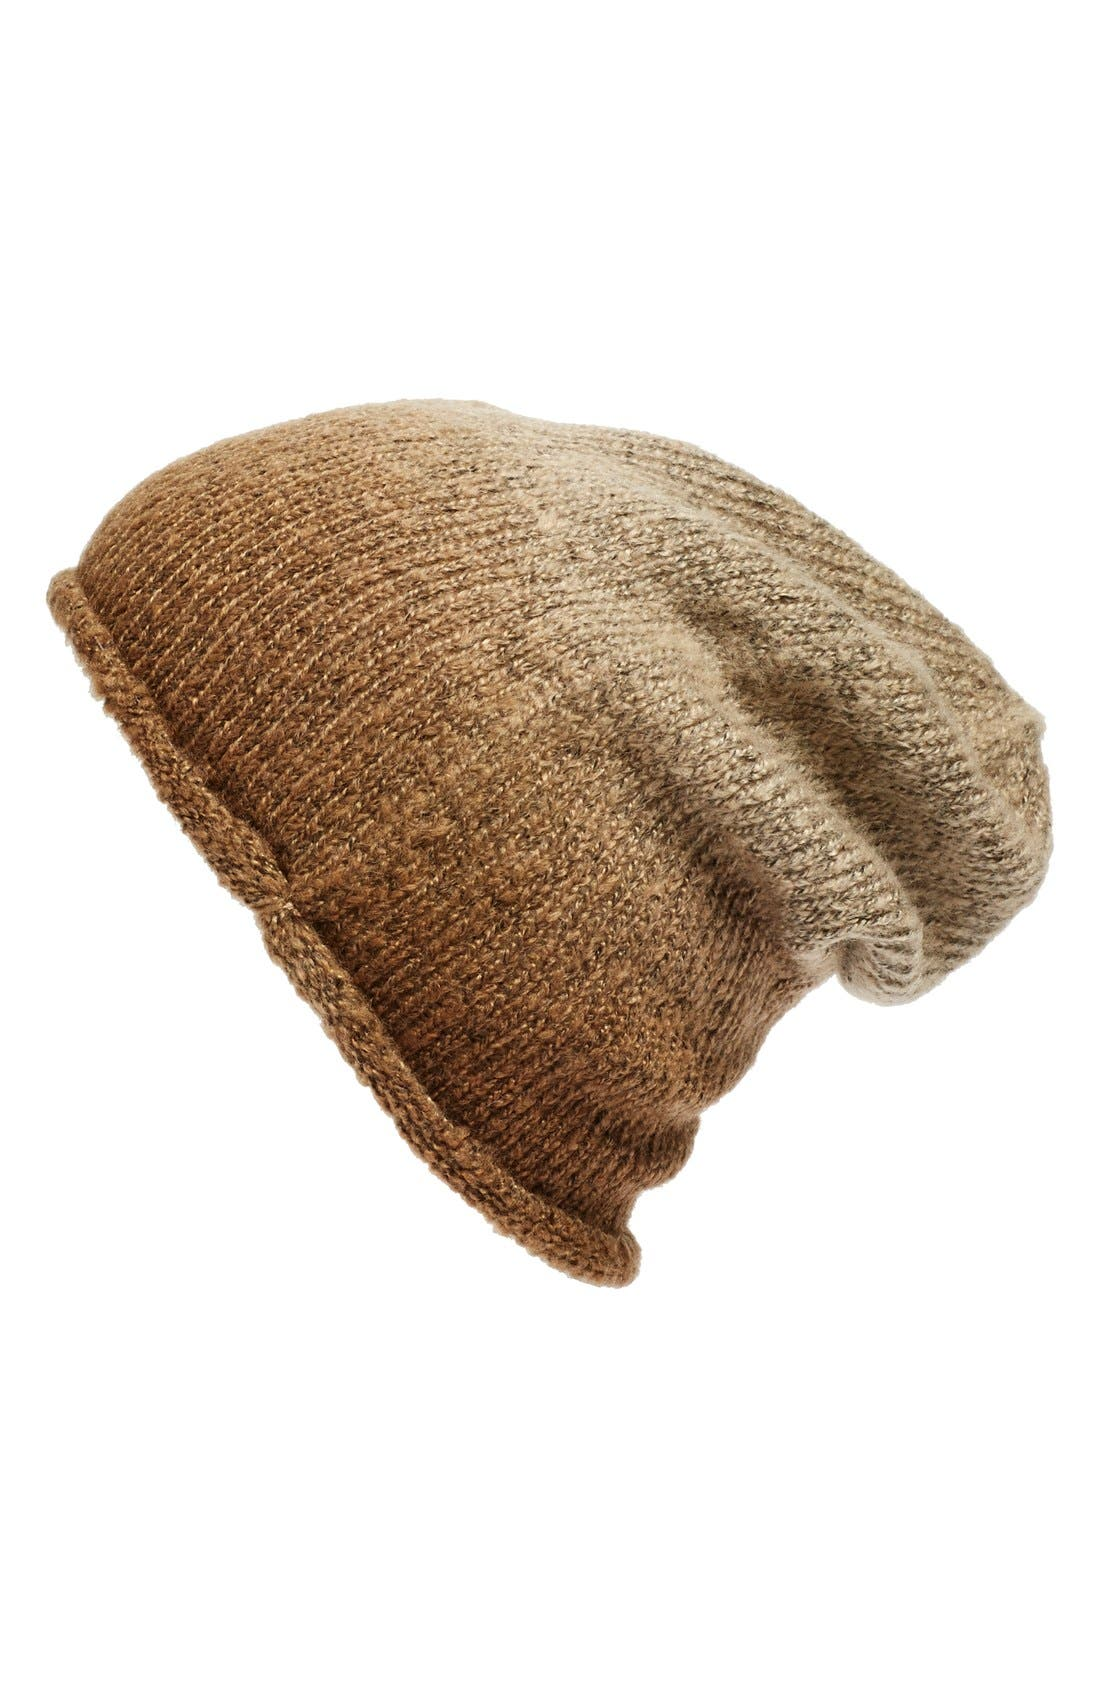 Alternate Image 1 Selected - Phase 3 Ombré Beanie